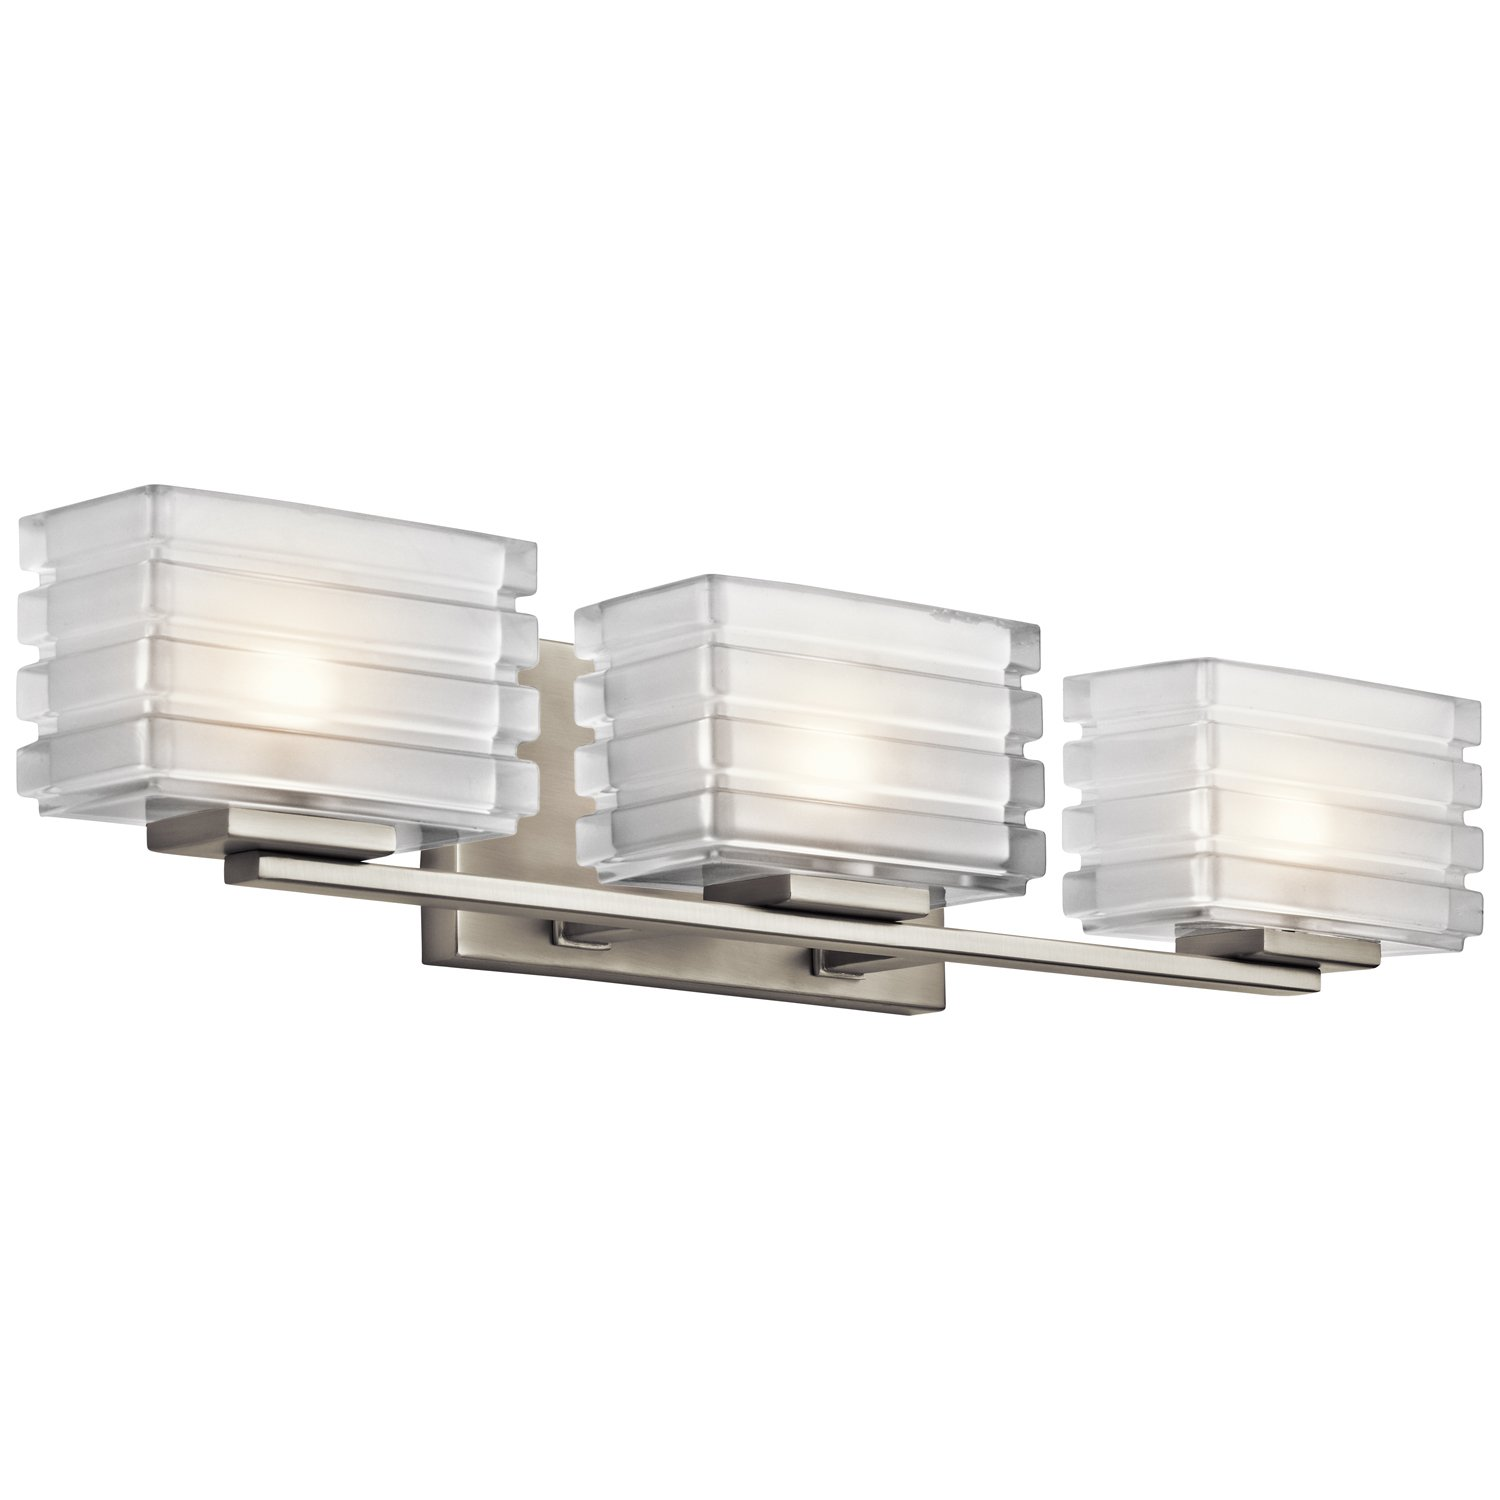 3 light bathroom fixture industrial kichler 45479ni bazely bath 3light halogen brushed nickel amazoncom